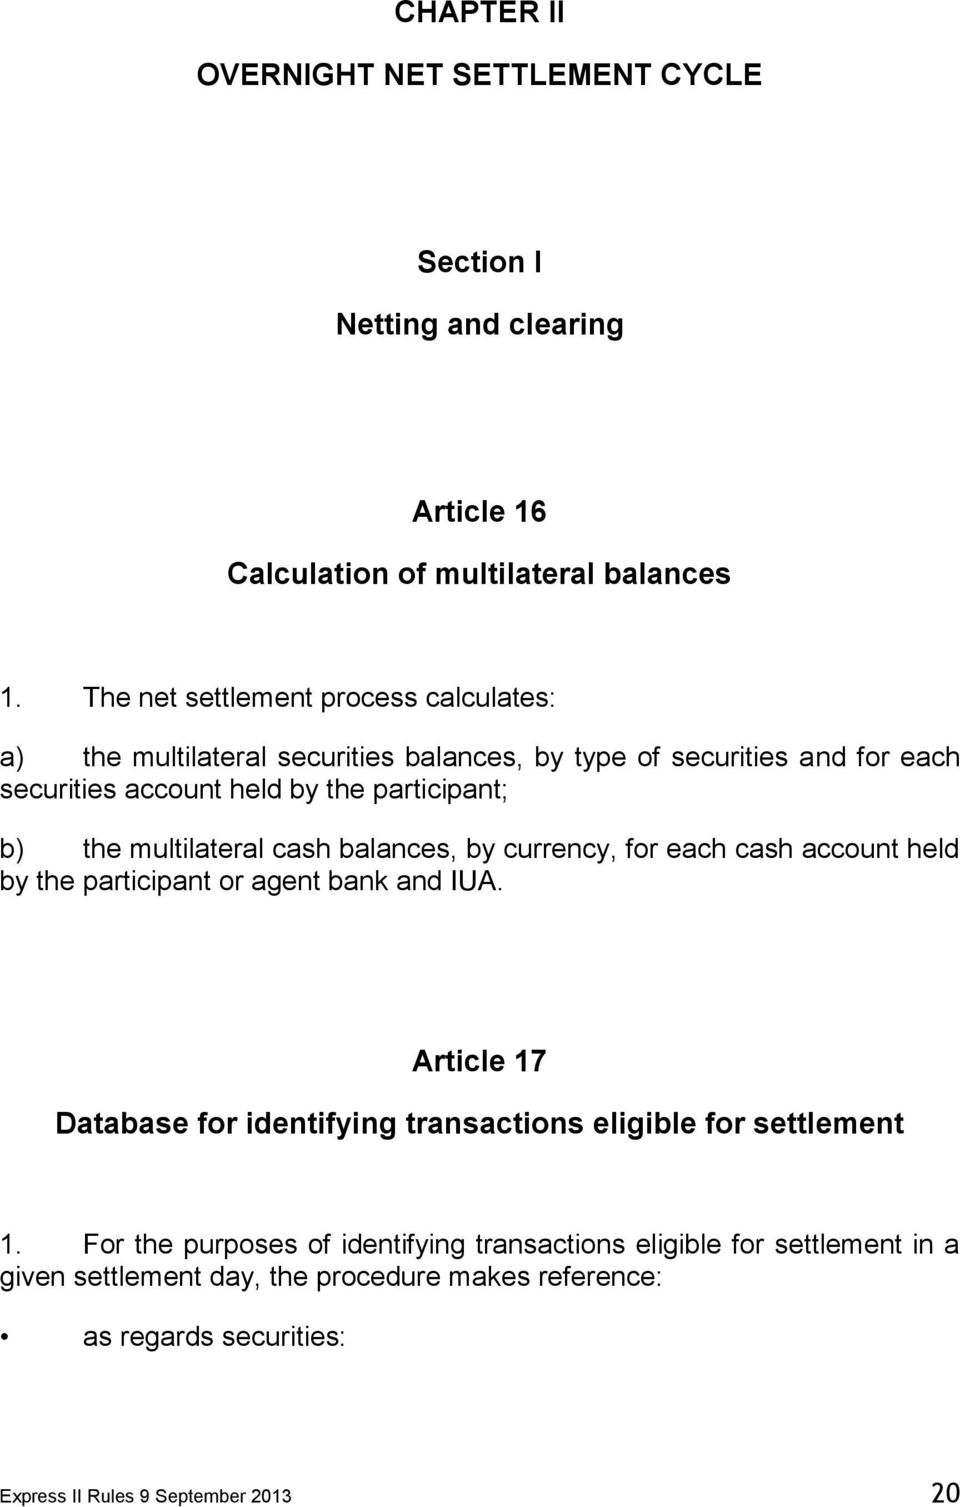 multilateral cash balances, by currency, for each cash account held by the participant or agent bank and IUA.